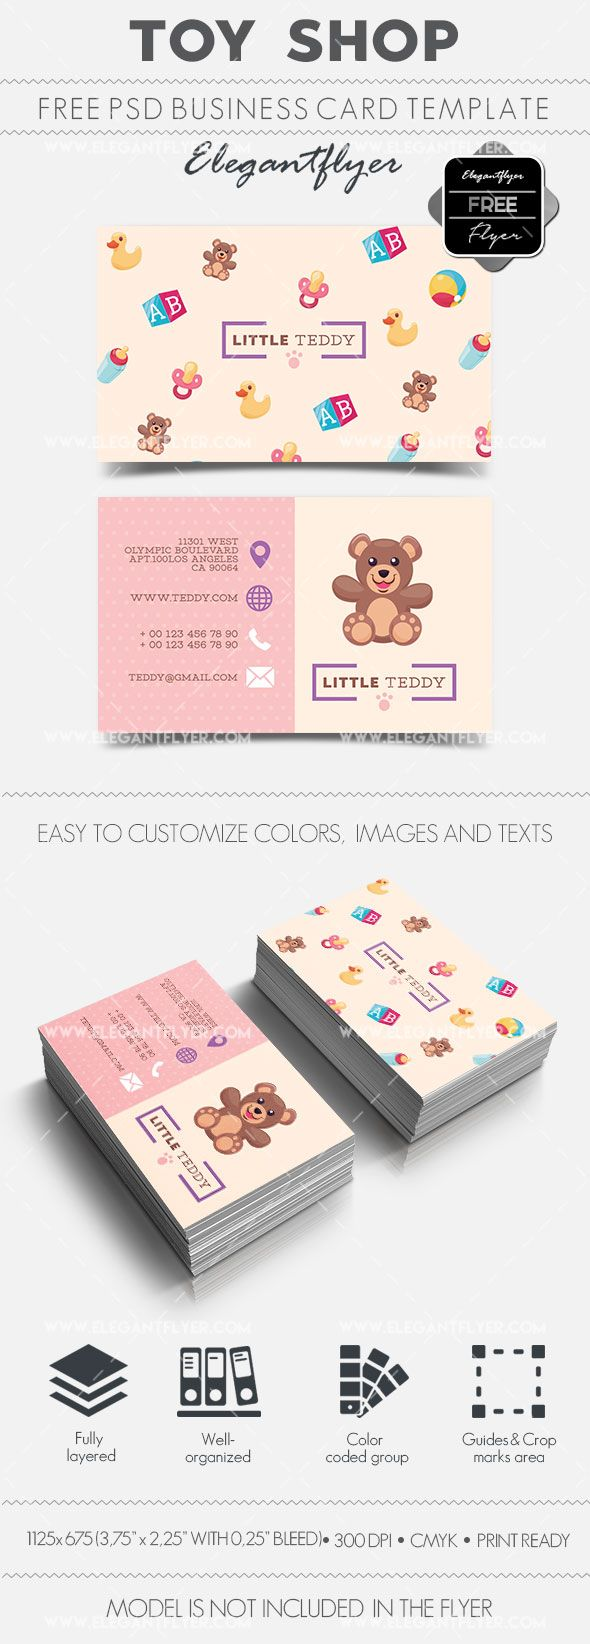 Toy Shop Free Business Card Templates Psd Design Business Card Ideas Business Card Template Psd Free Business Card Templates